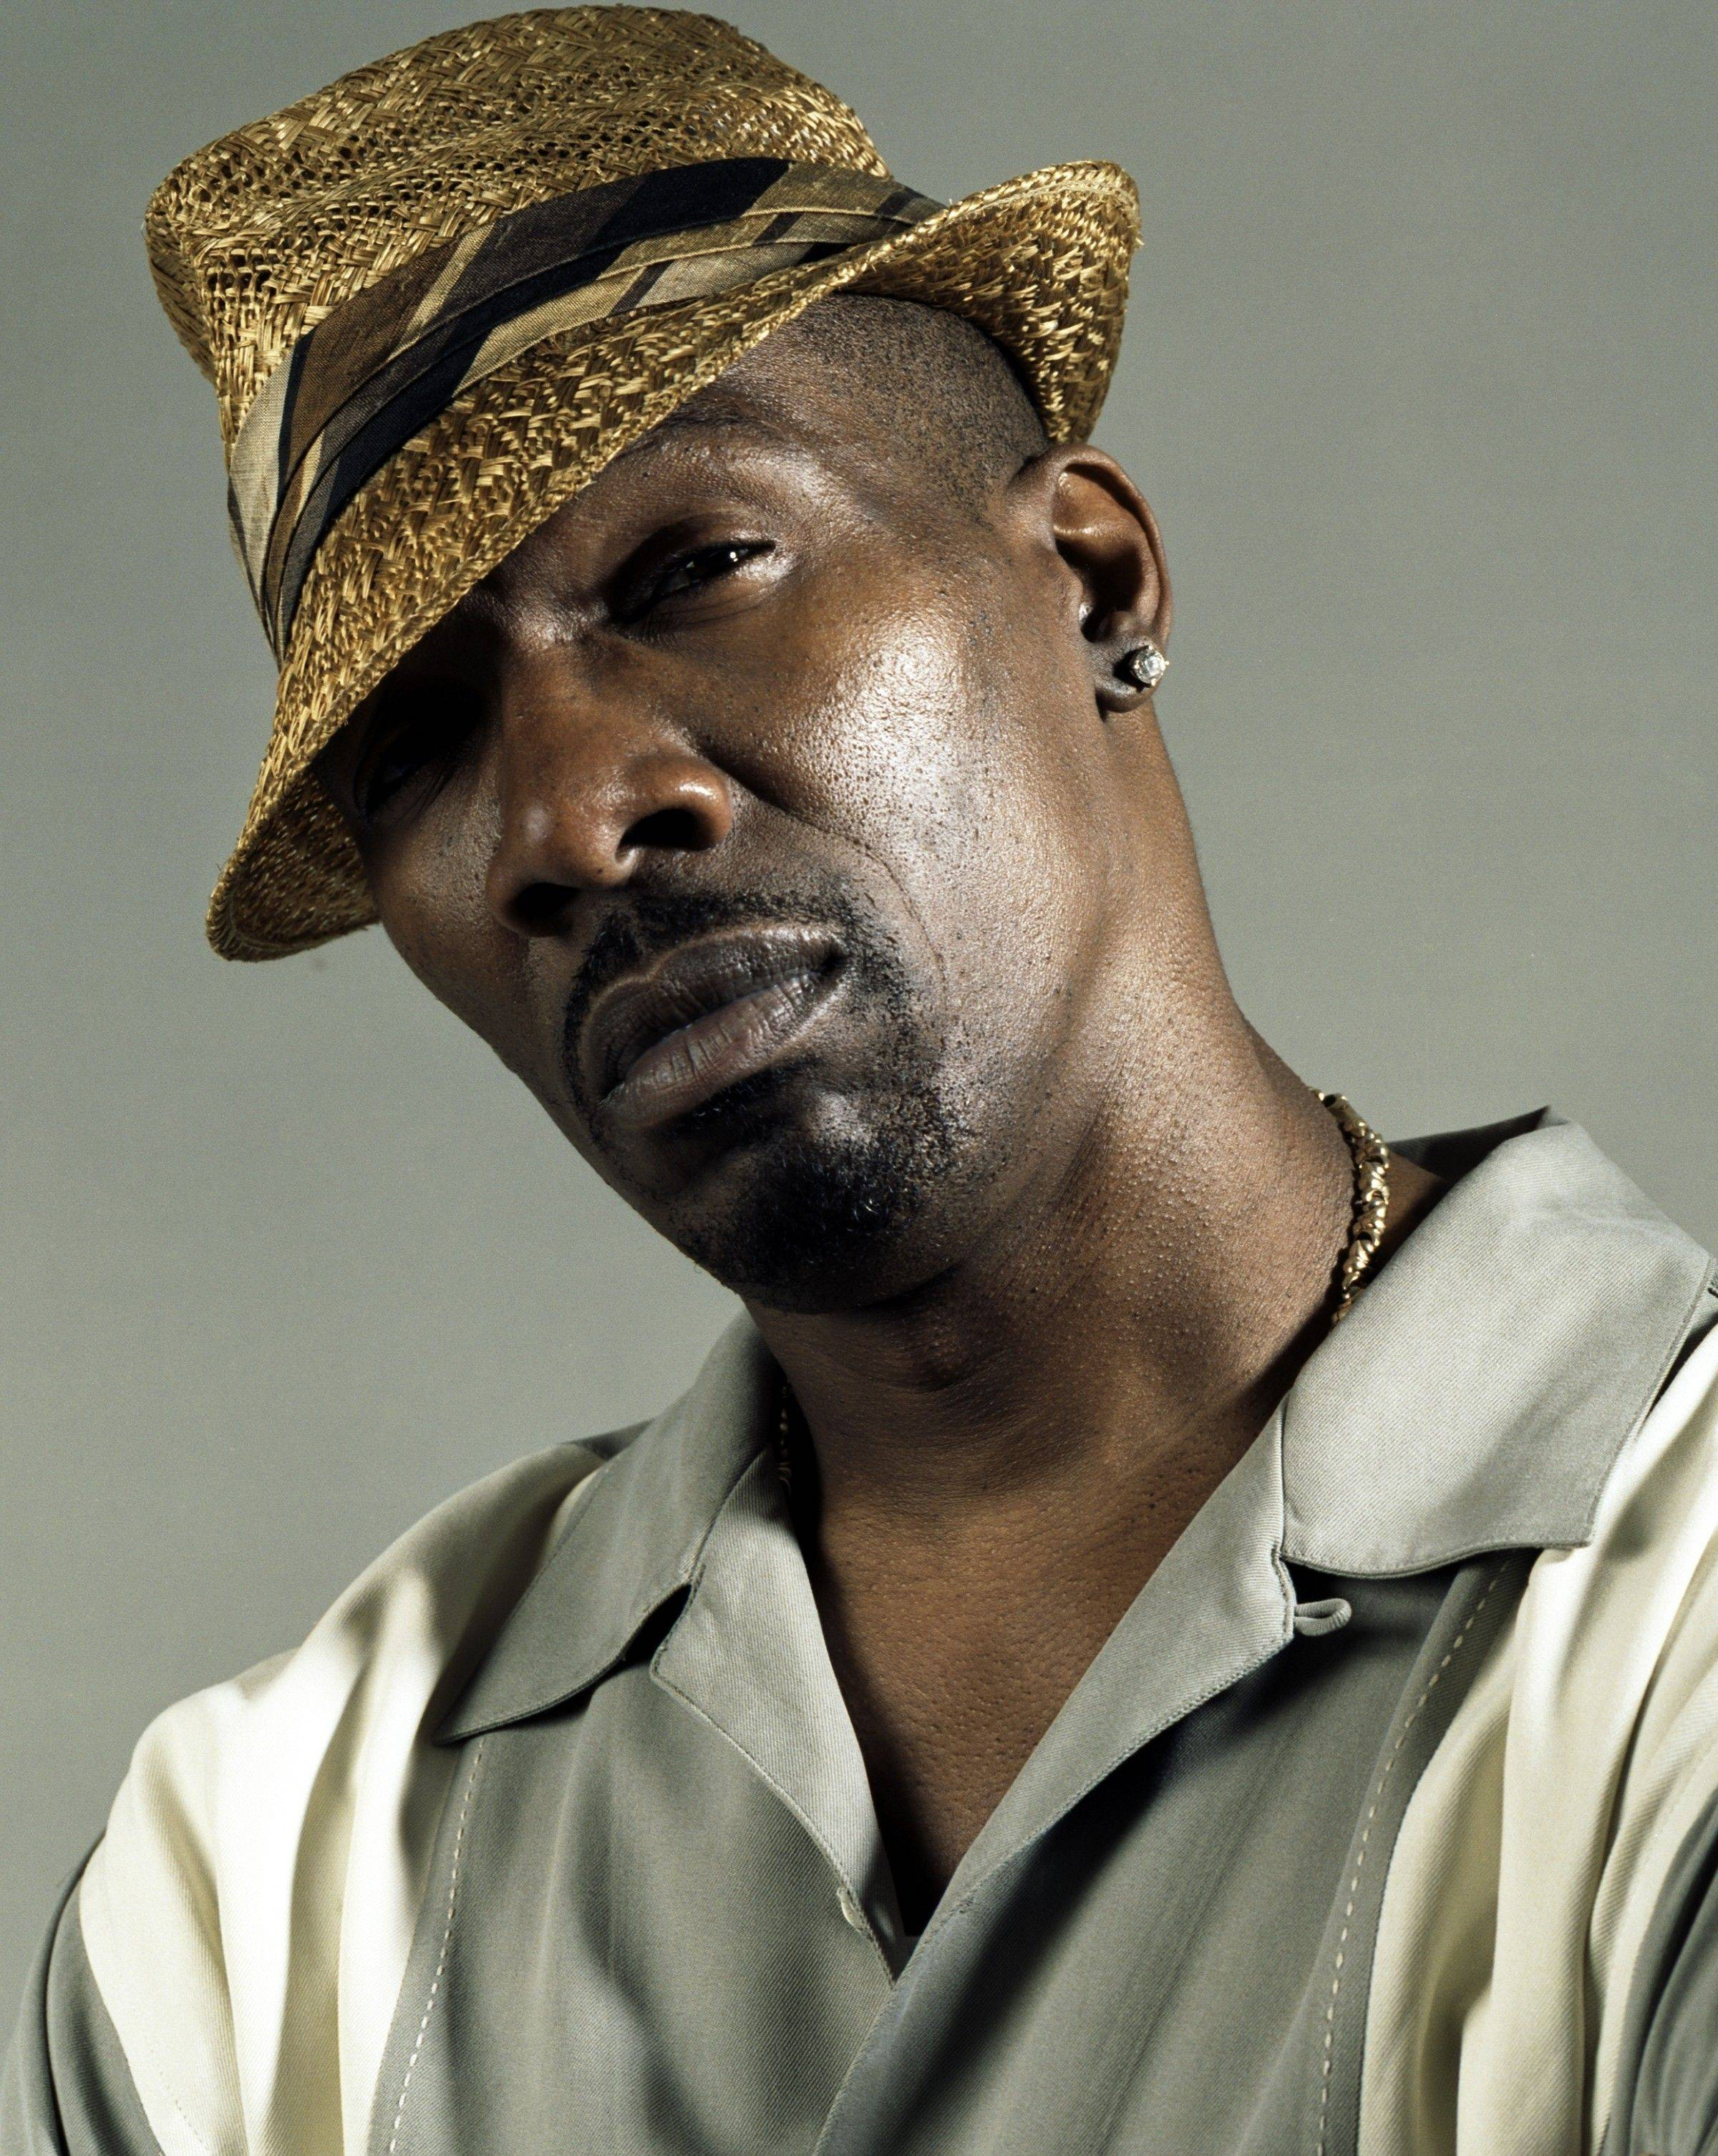 Comedian Charlie Murphy appears at the Improv Comedy Showcase in Schaumburg from Feb. 2 to 4.